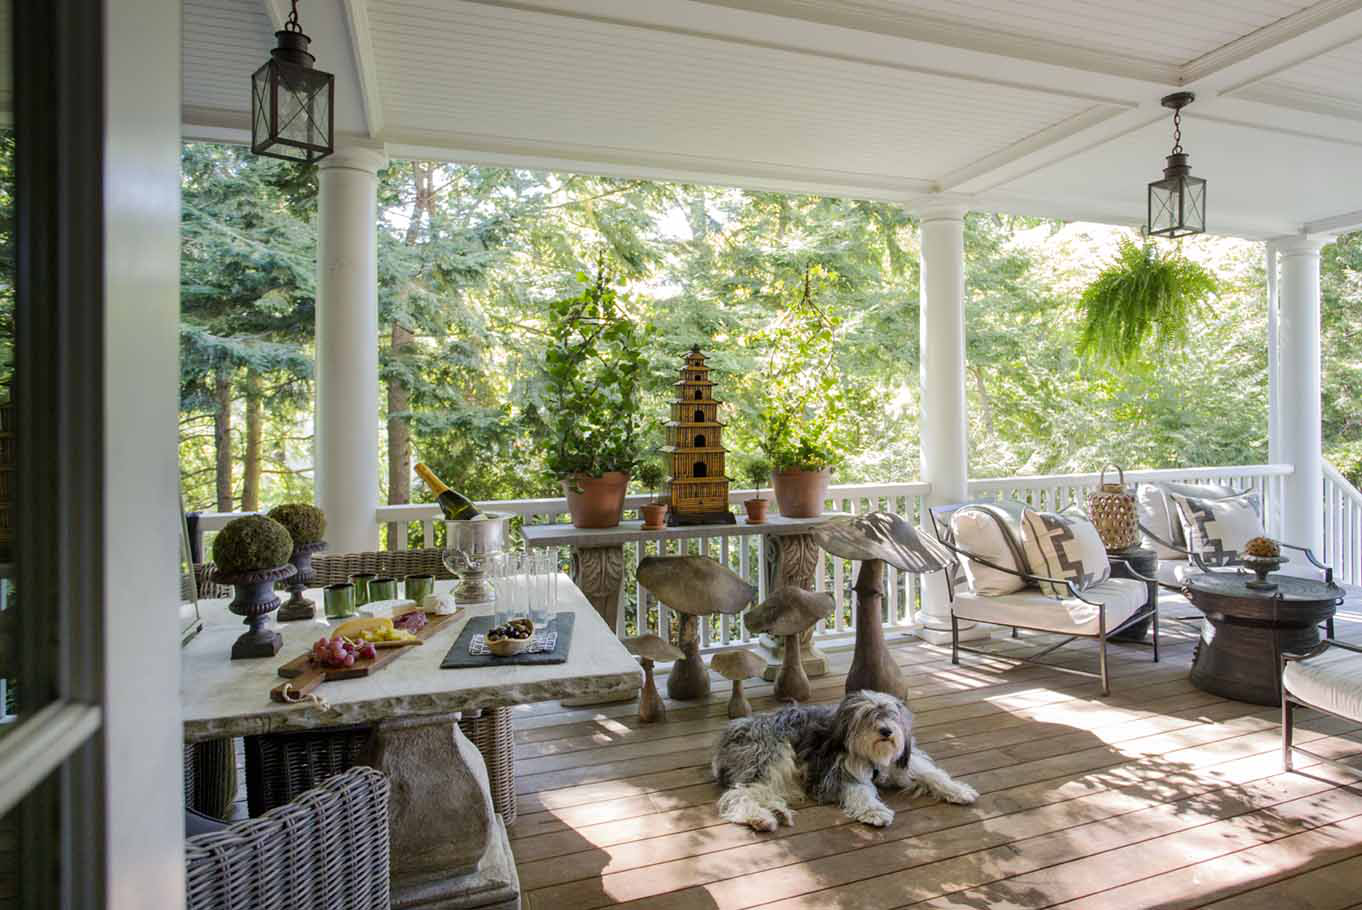 Covered porch for outdoor dining by Kristin Paton Interiors